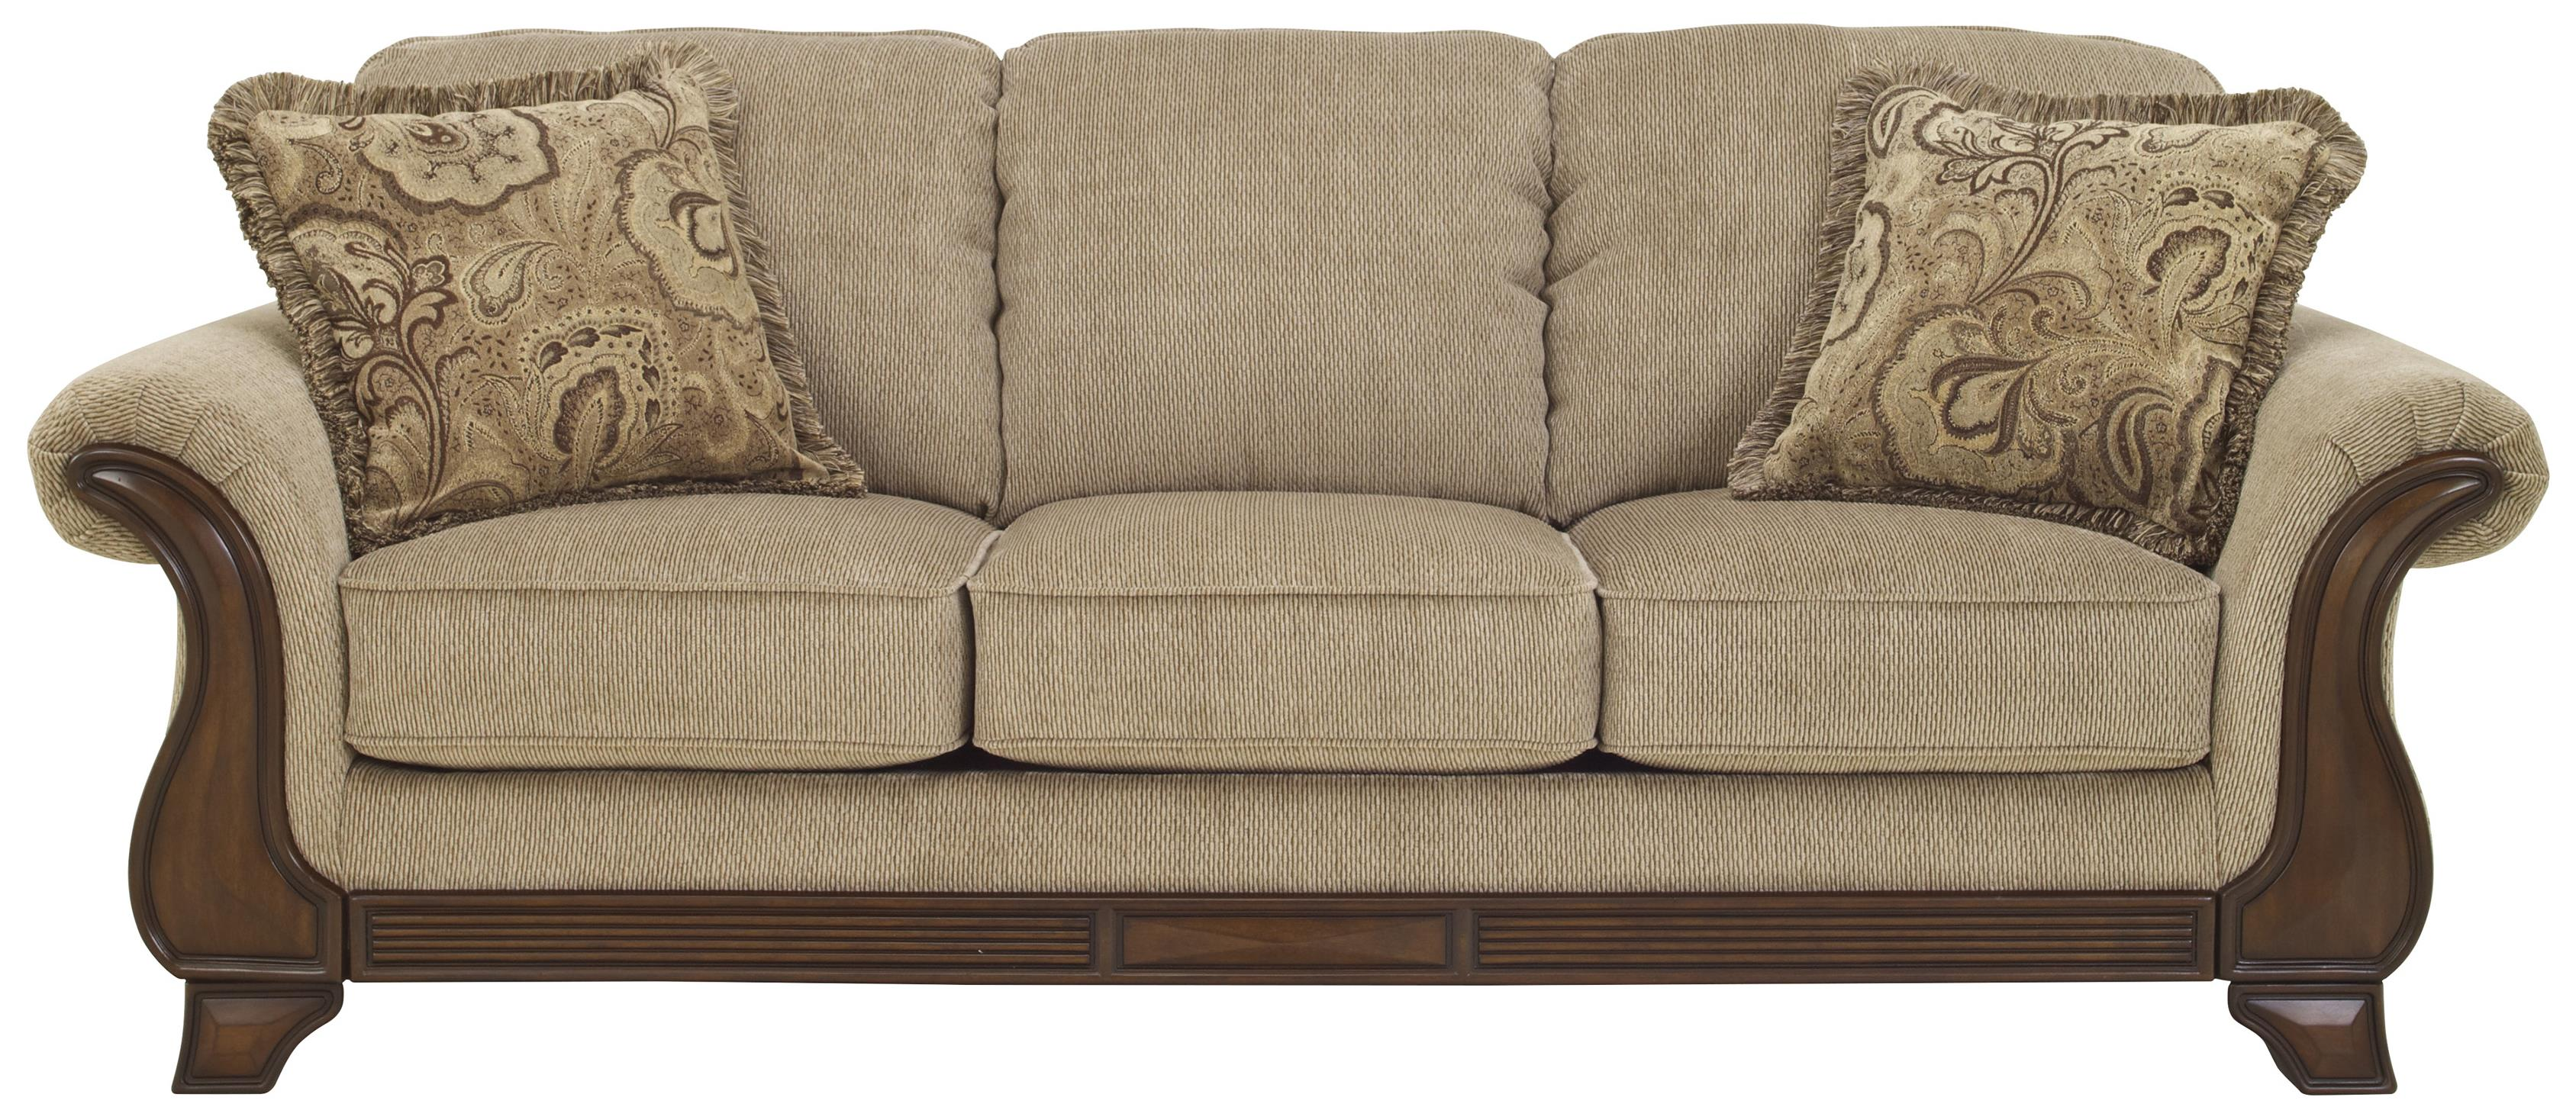 Signature design by ashley lanett sofa with flared arms for Signature design by ashley sofa